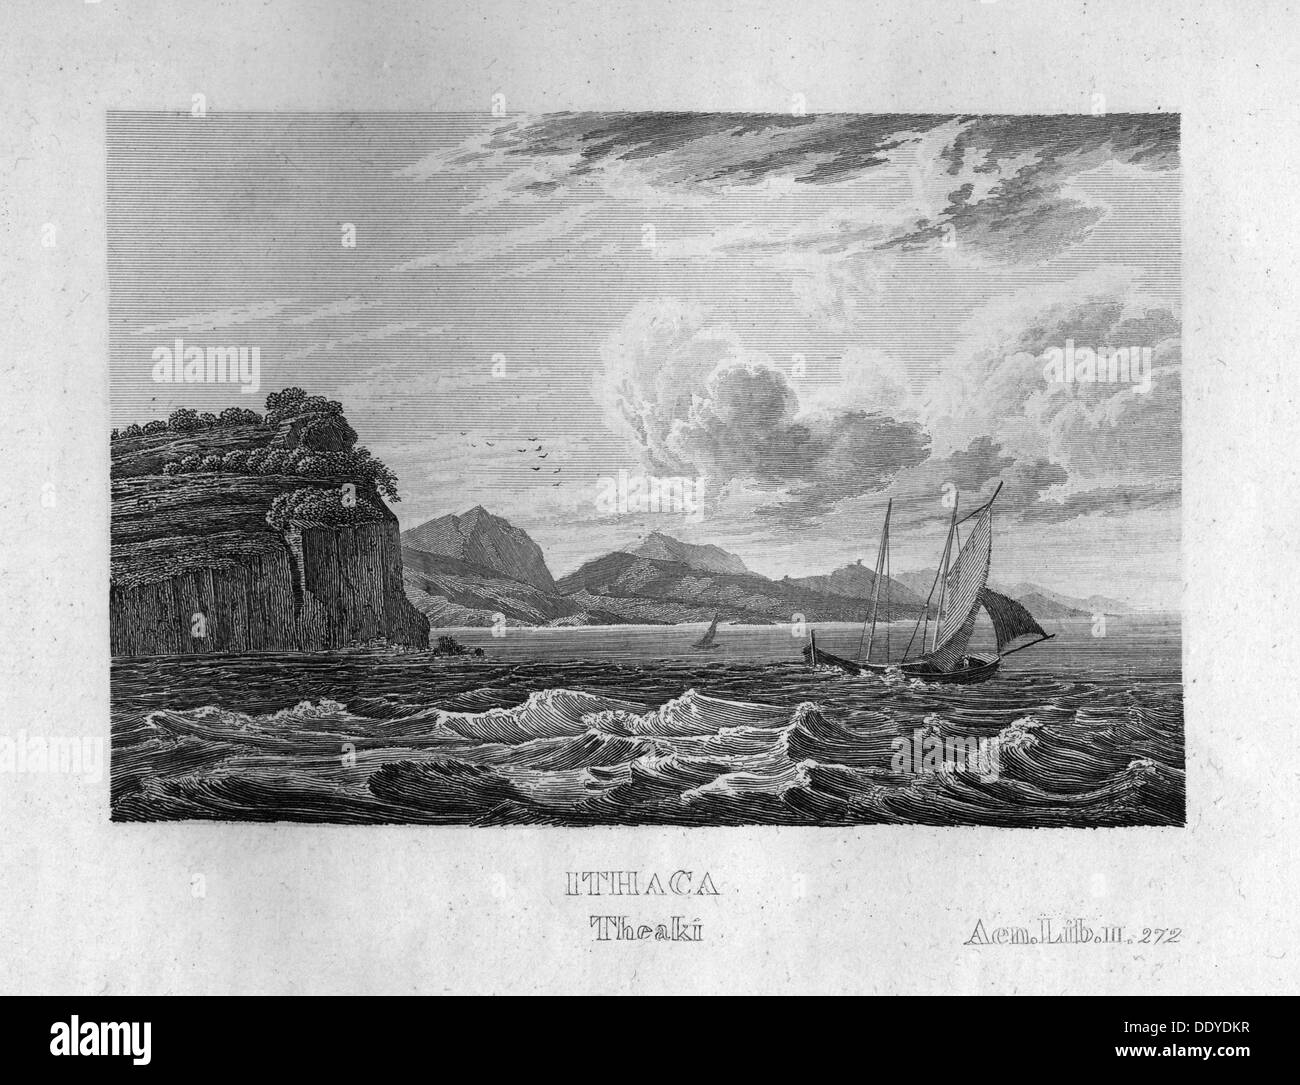 Ithaca, Greece, c1833. The island that was the home of Odysseus, according to Homer's Odyssey. - Stock Image